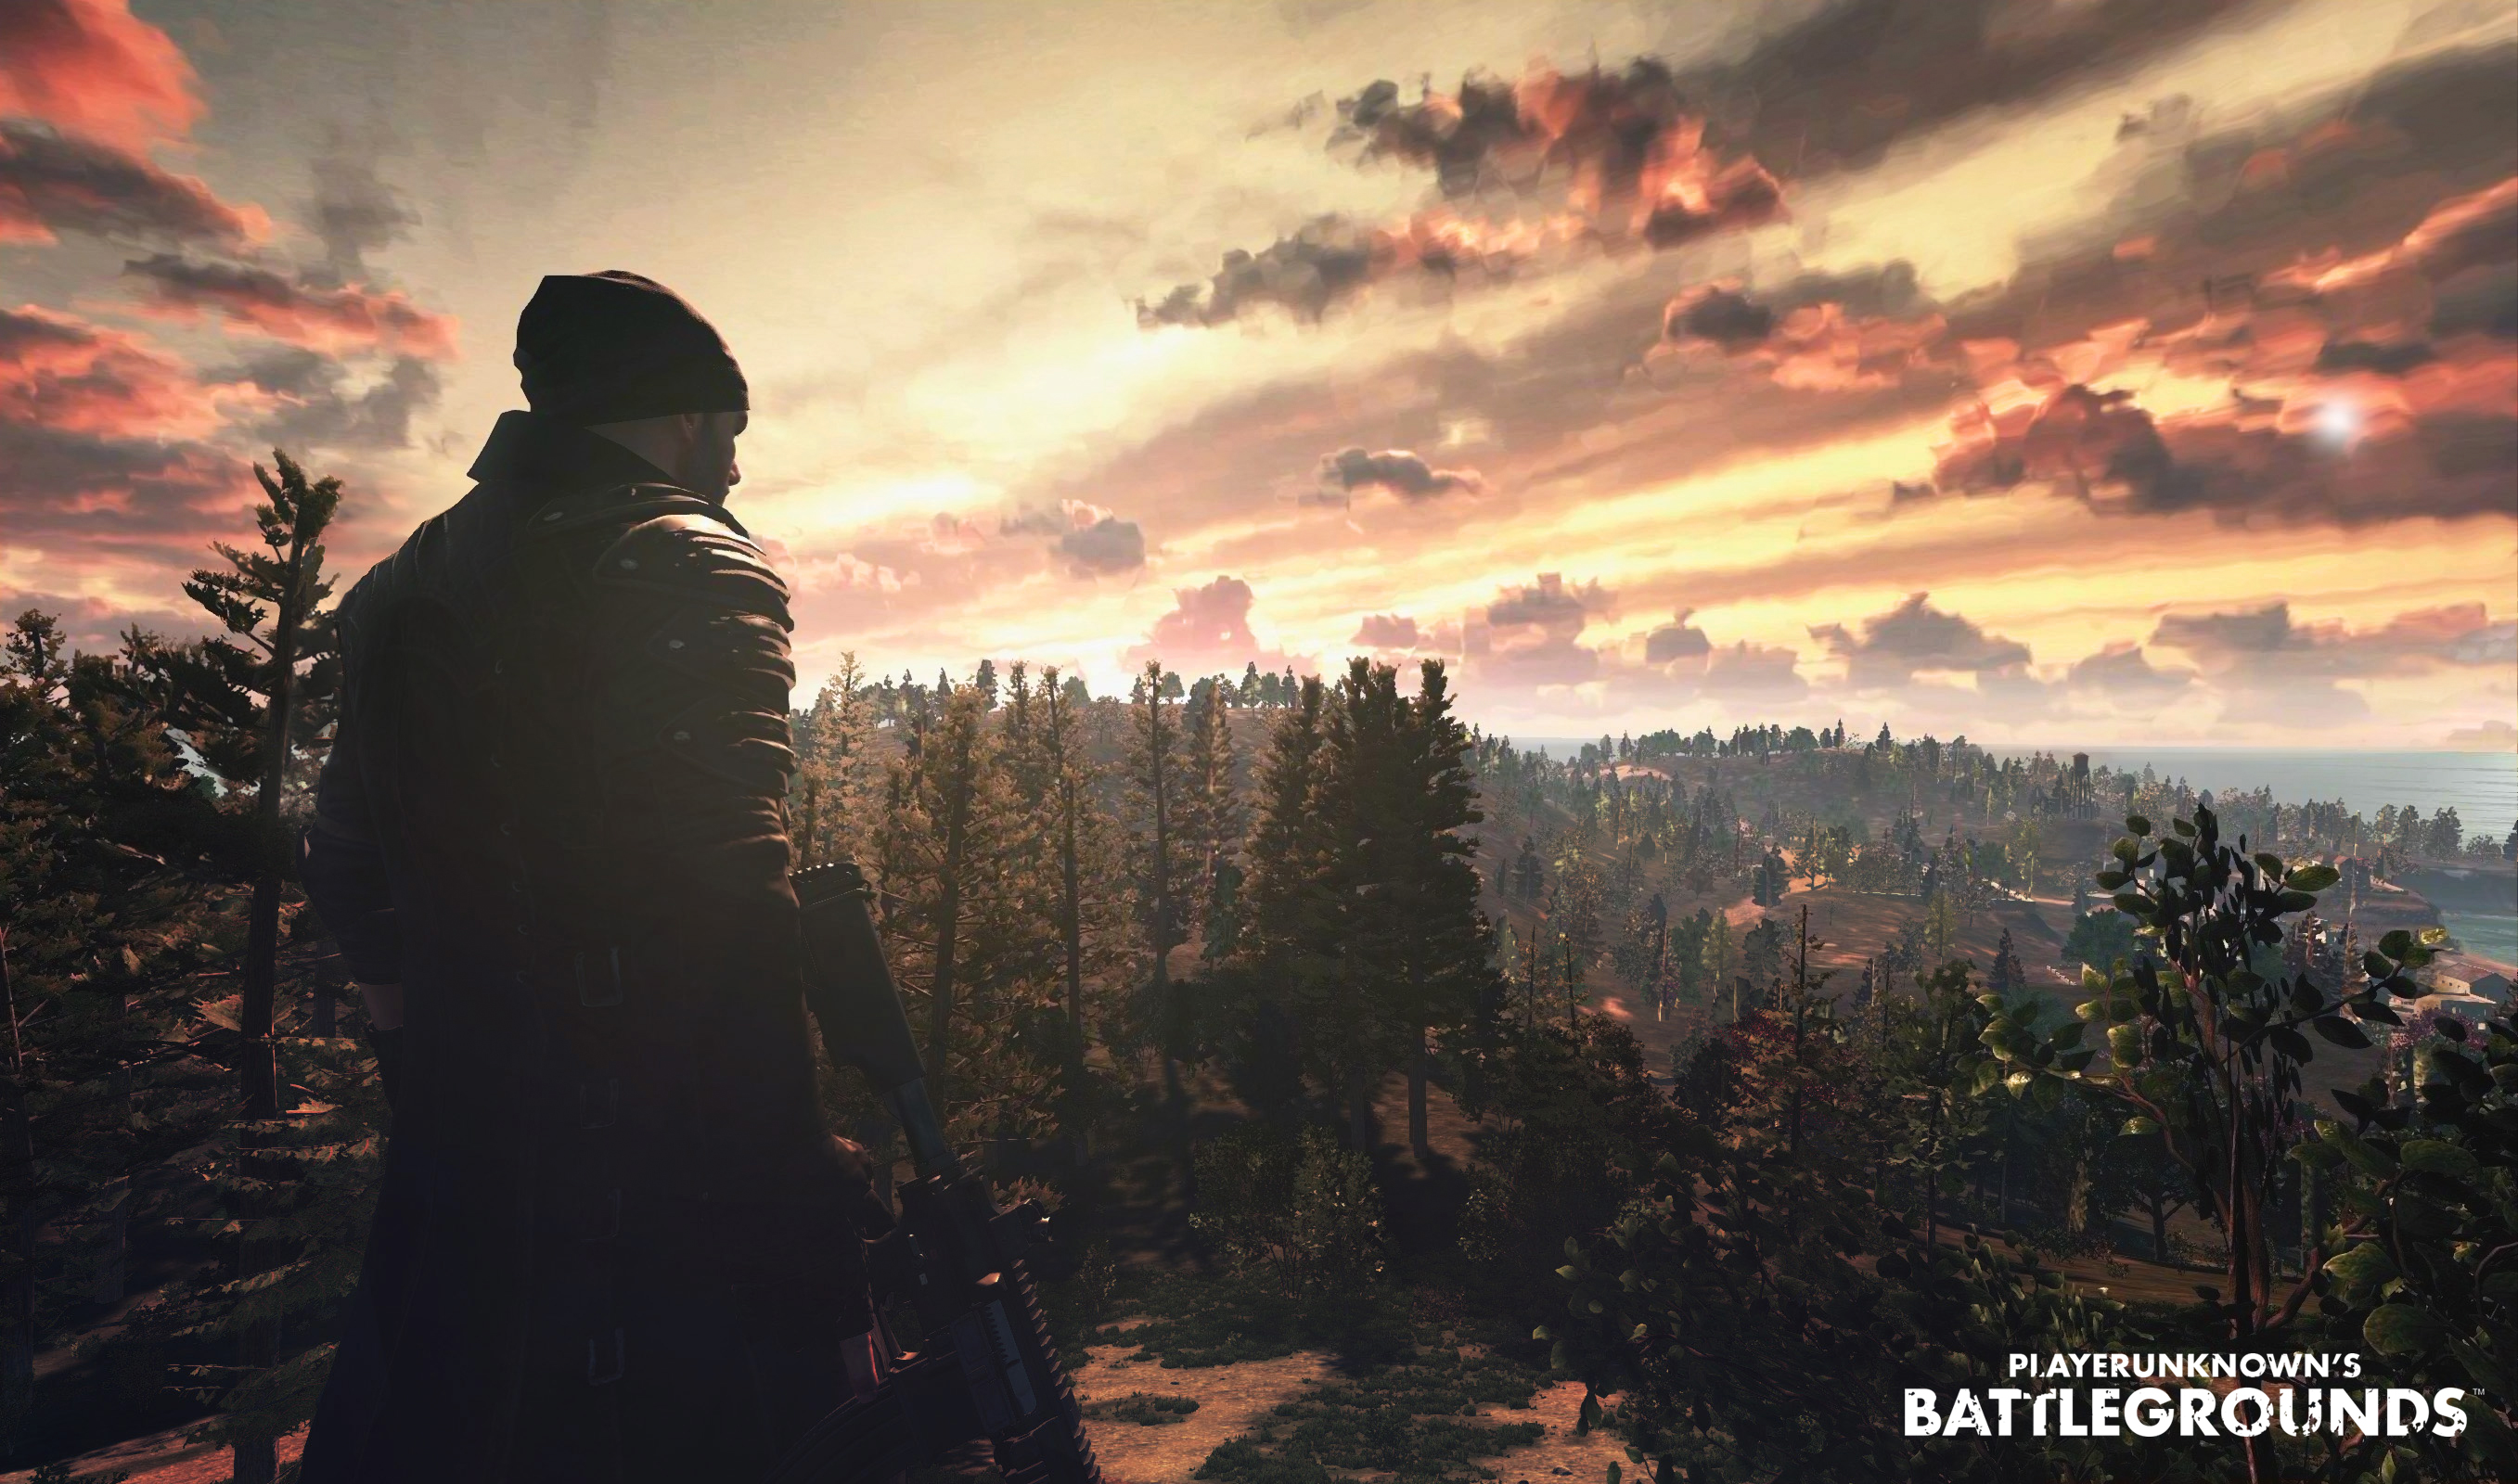 playerunknown s battlegrounds hd 73a001 - Player Unknown's Battlegrounds (PUBG) 4K Game Poster - Pubg wallpaper phone, pubg wallpaper iphone, pubg wallpaper 1920x1080 hd, pubg hd wallpapers, pubg 4k wallpapers, player unknown's battlegrounds game poster 4k, Player Unknown's Battlegrounds 4k wallpapers